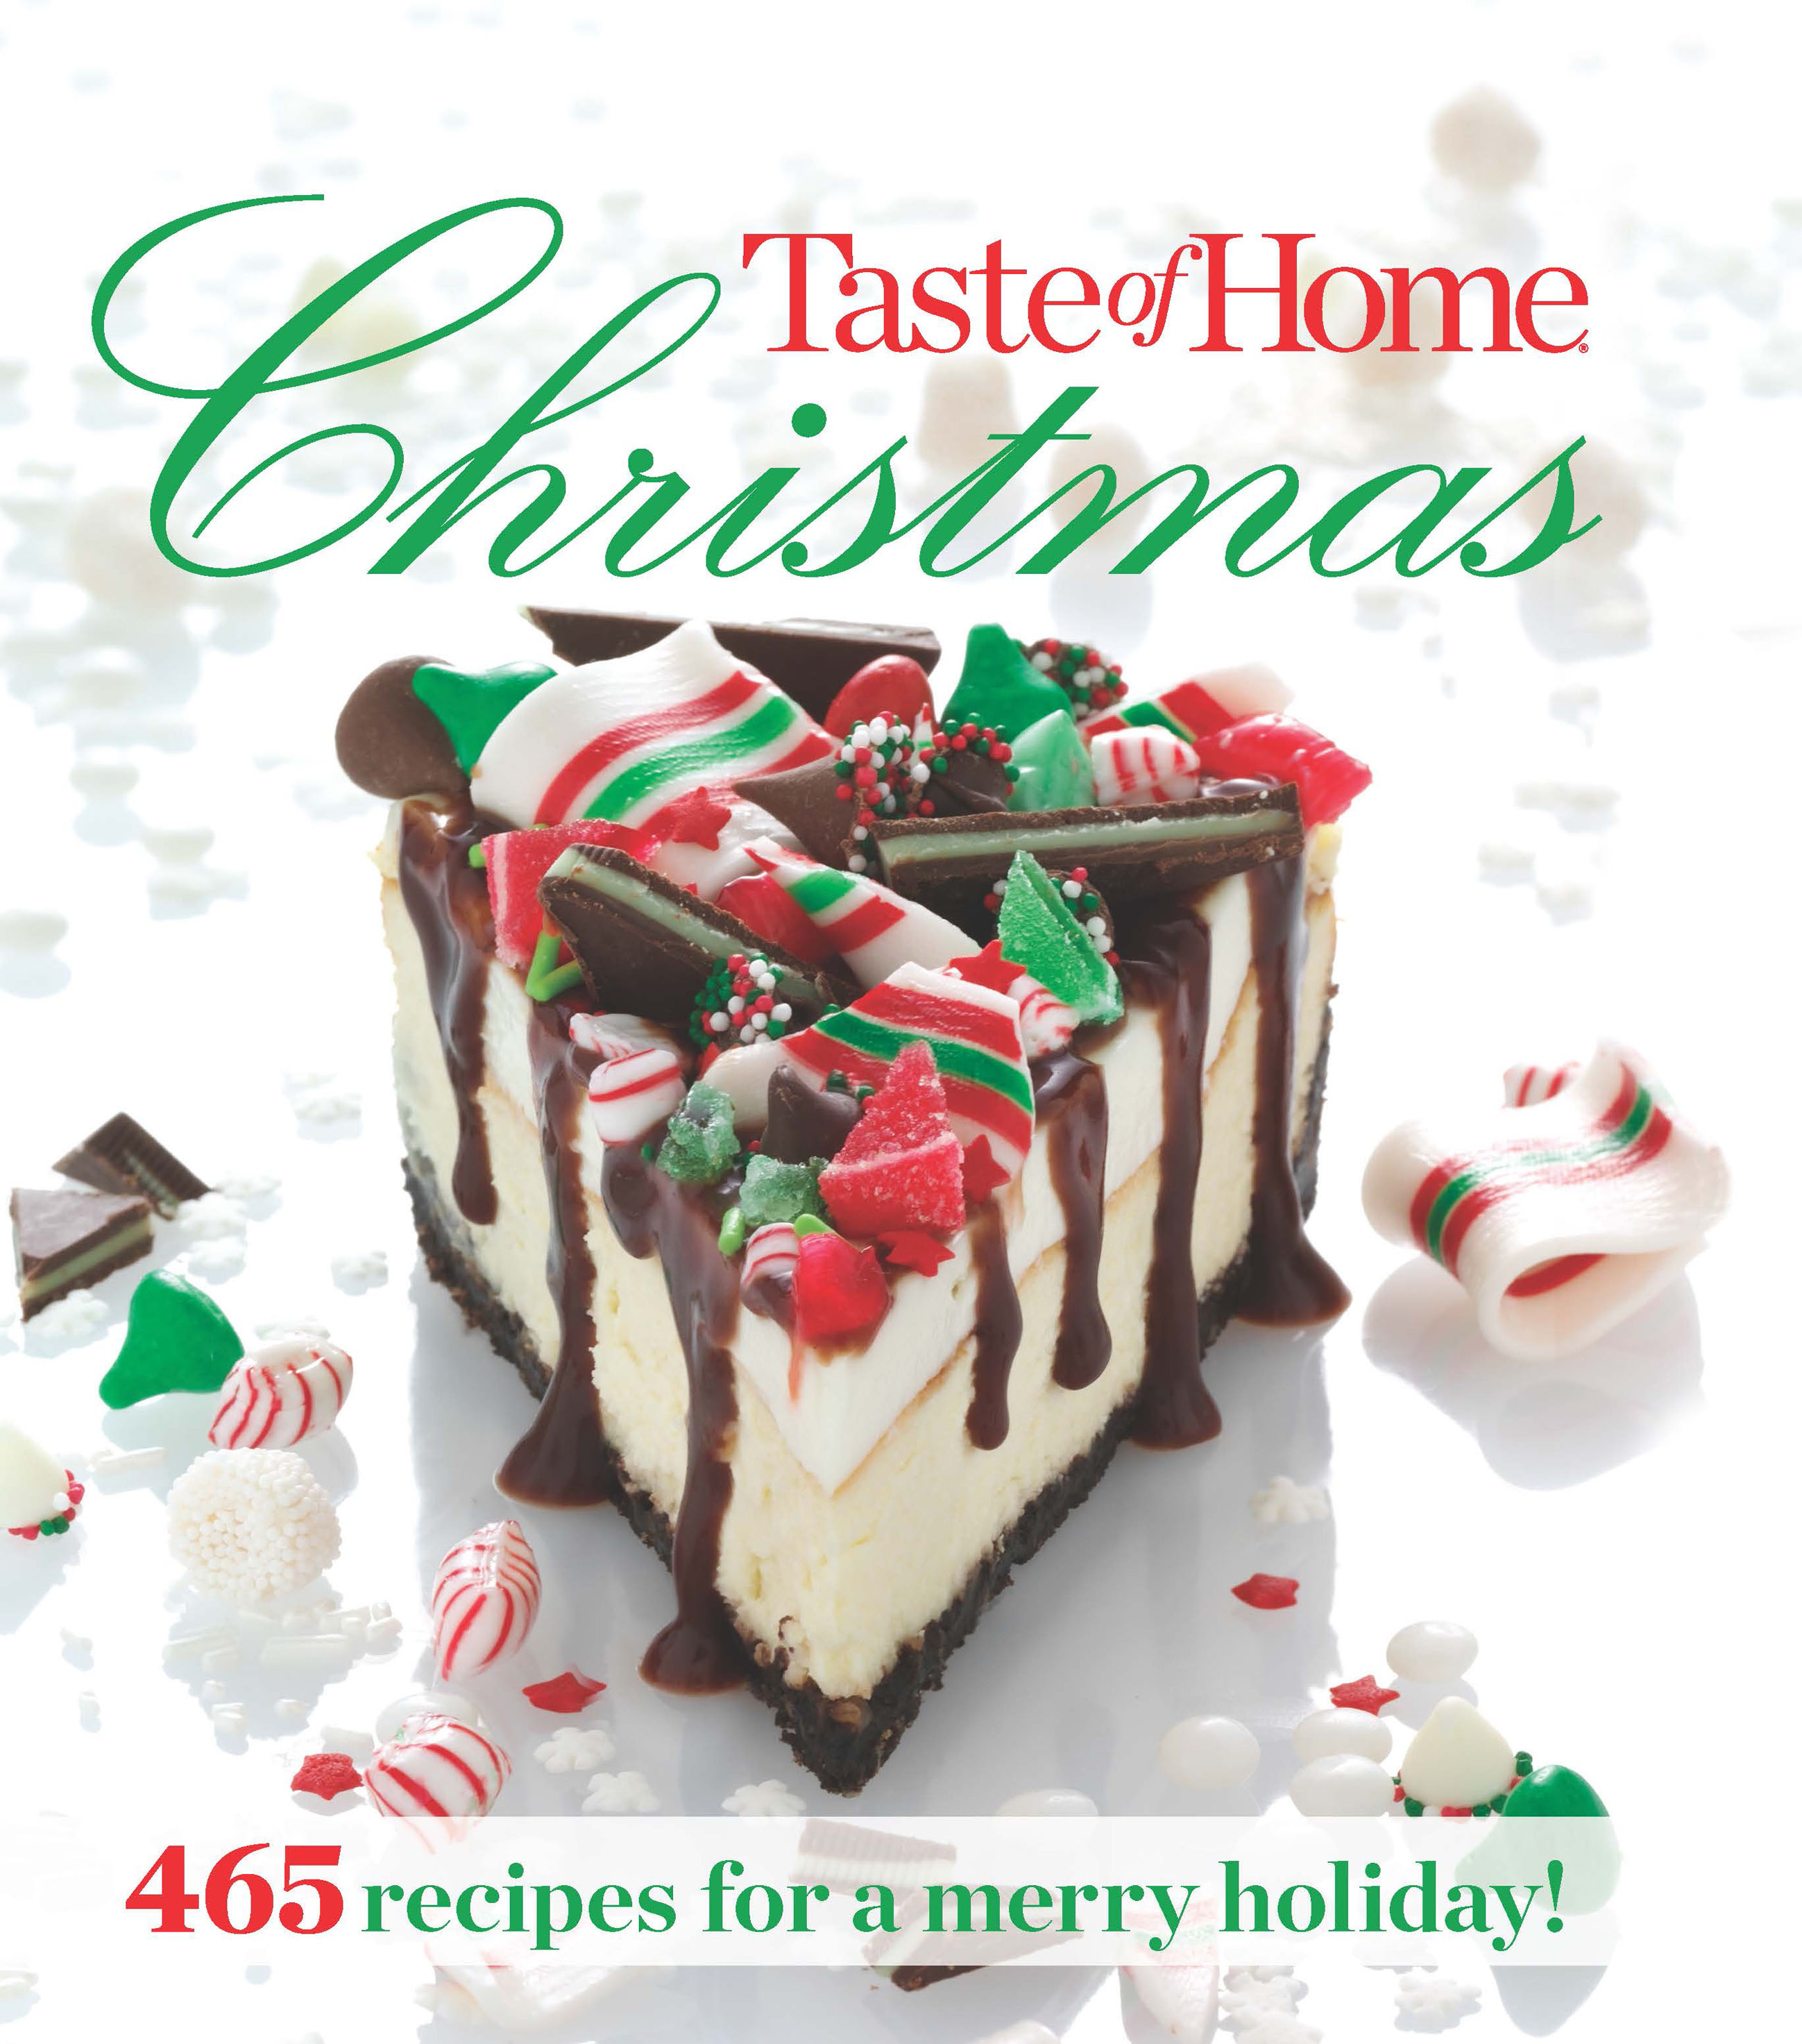 Taste of home christmas book by taste of home official publisher 465 recipes for a merry holiday forumfinder Gallery